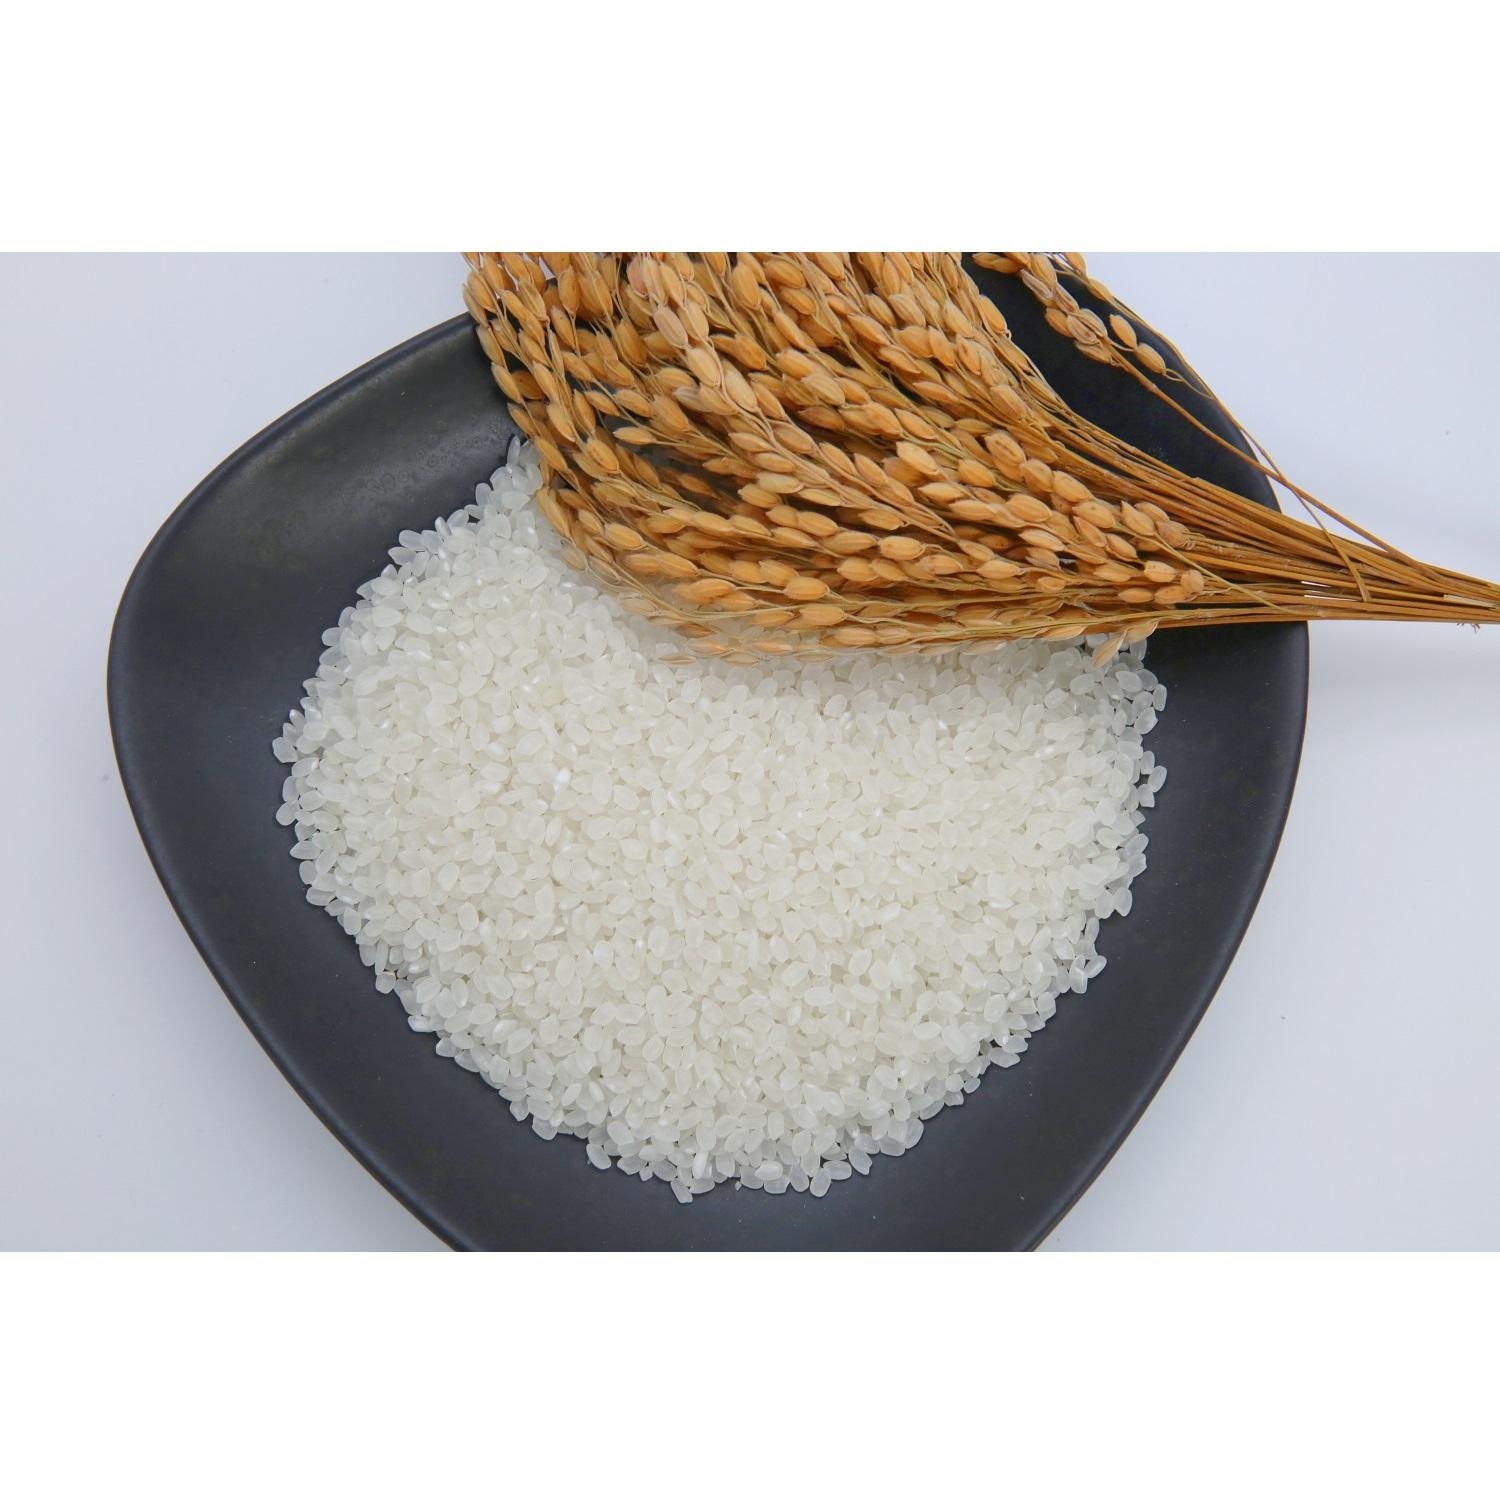 Well milled 24 Months Current Year JAPONICA RICE (SHORT-GRAIN) White Rice From Viet Nam